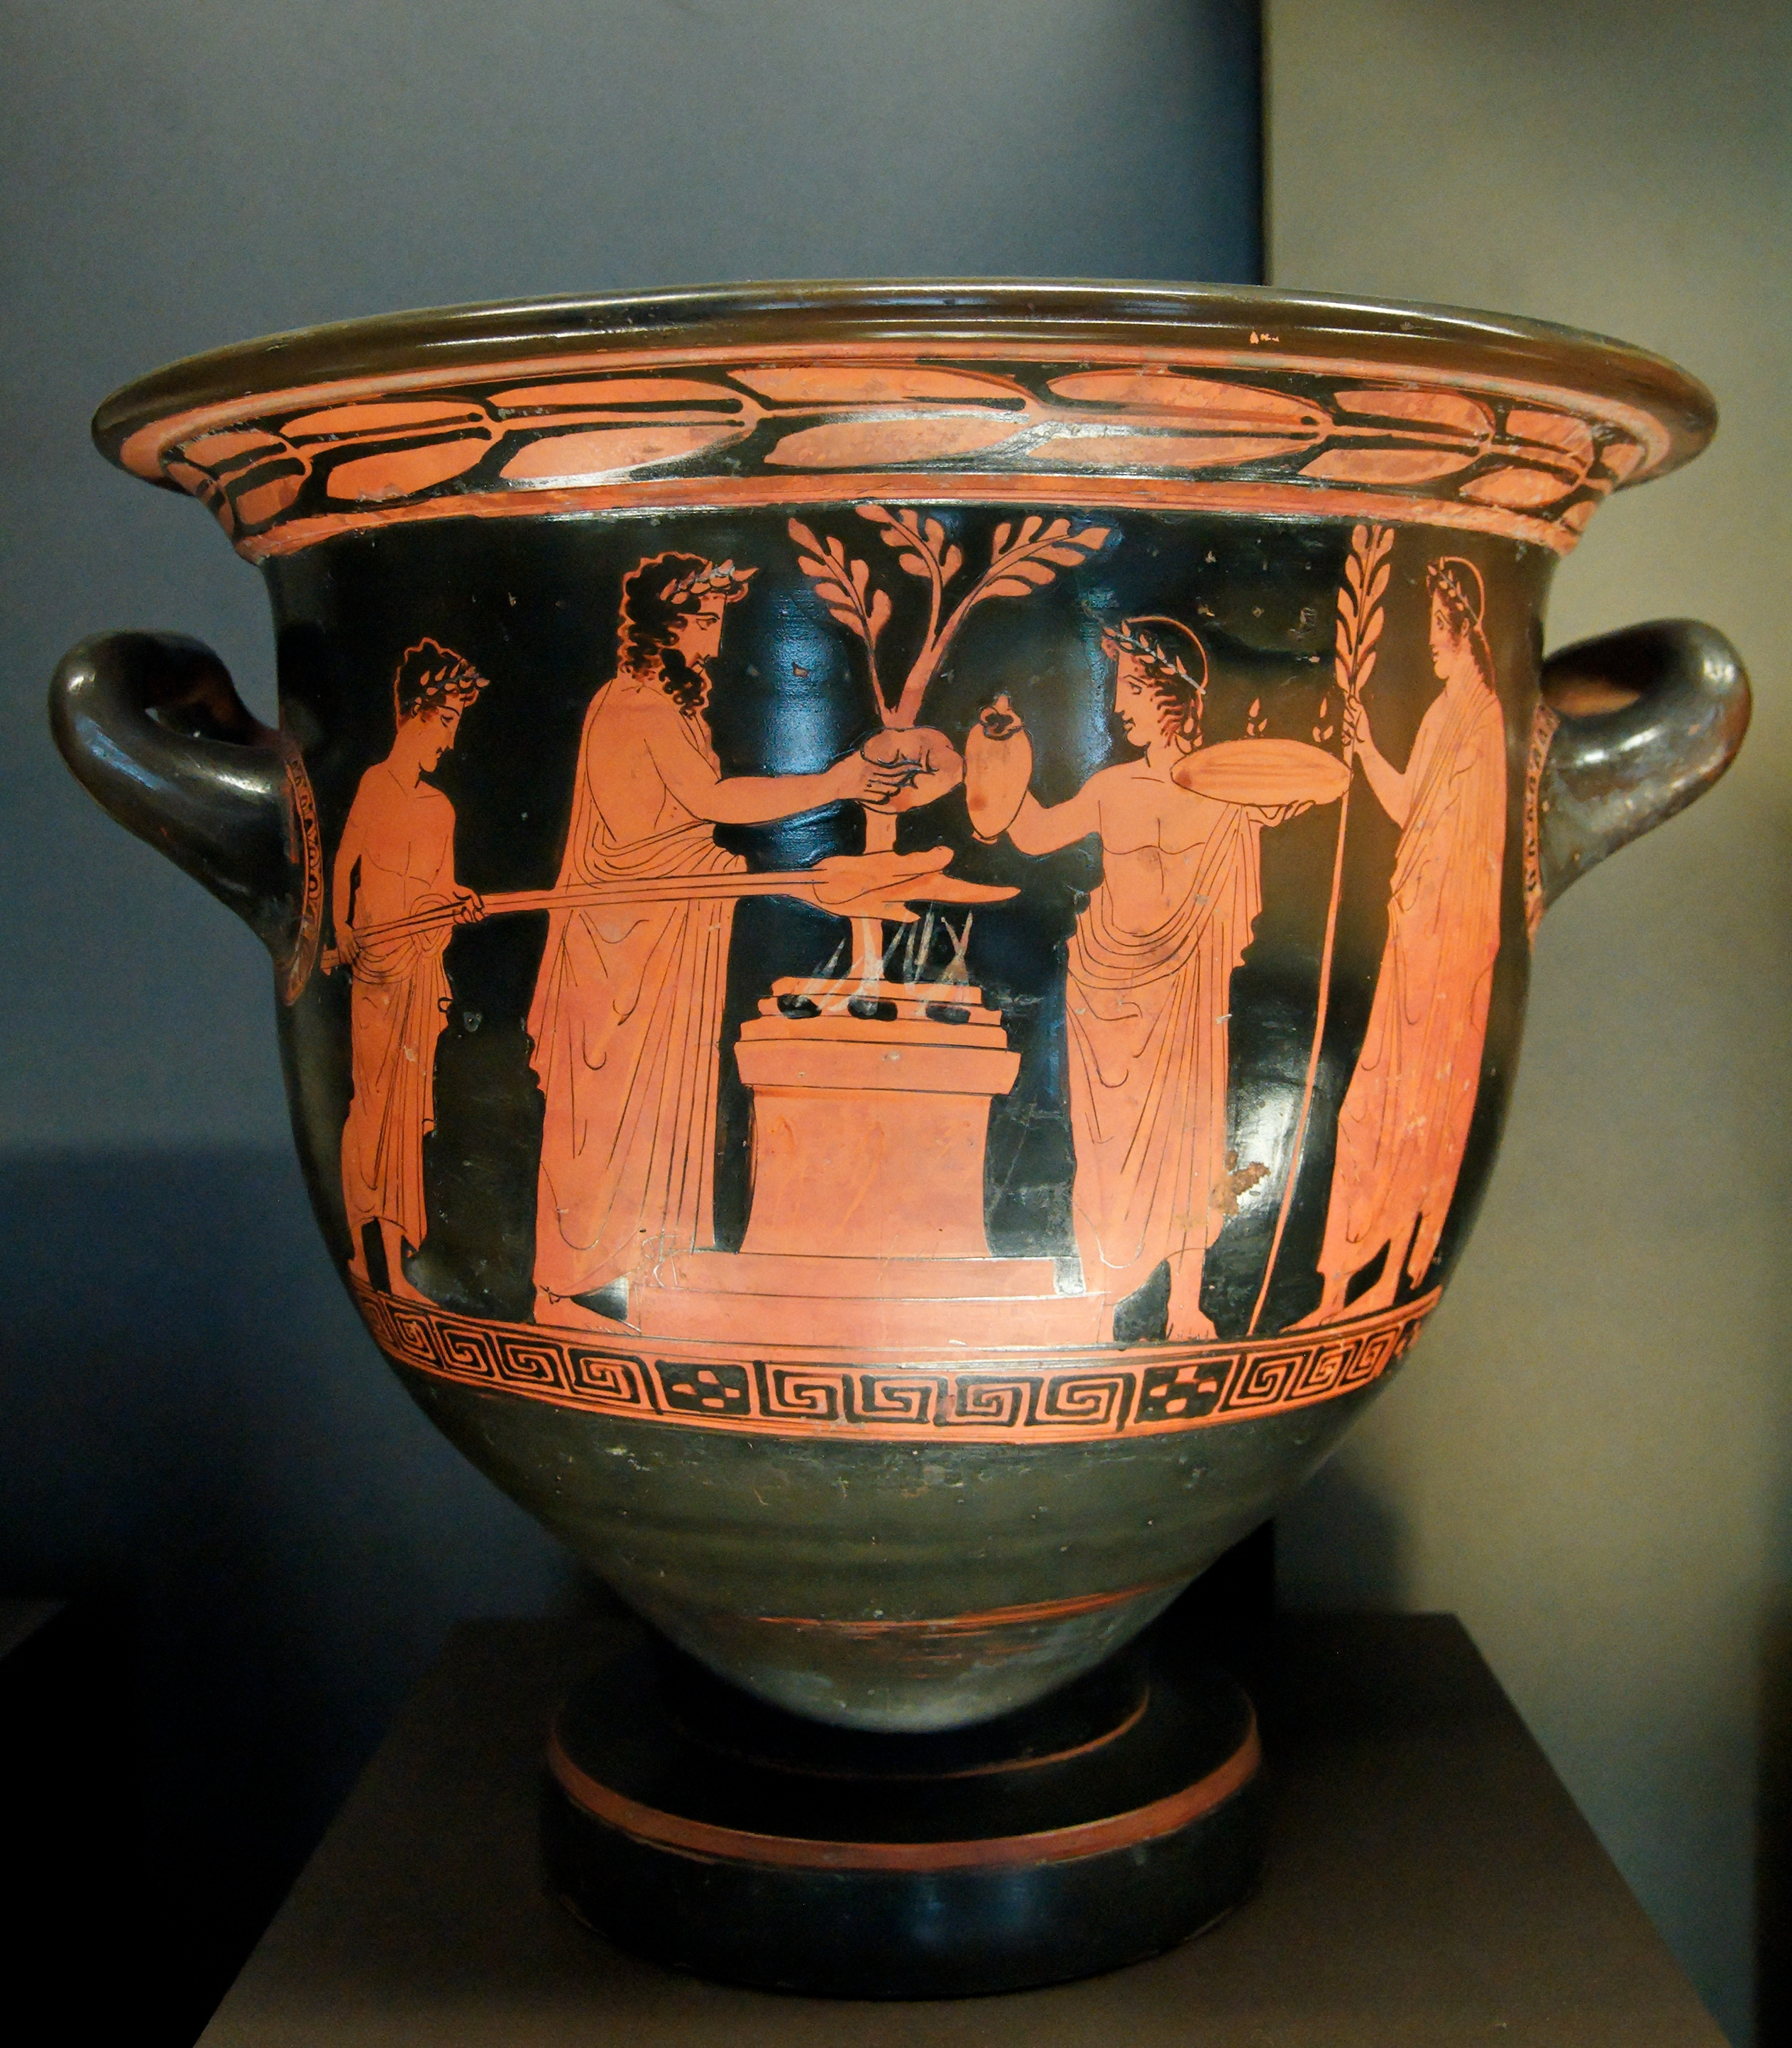 art and historical analysis of an ancient bell krater essay Content of culture and the arts (h008/21 and h008/22) 12  summary of  updates  prescribed ancient sources for all components  historical and  cultural context of the classical world, with recognition,  red-figure bell krater  by schiller.